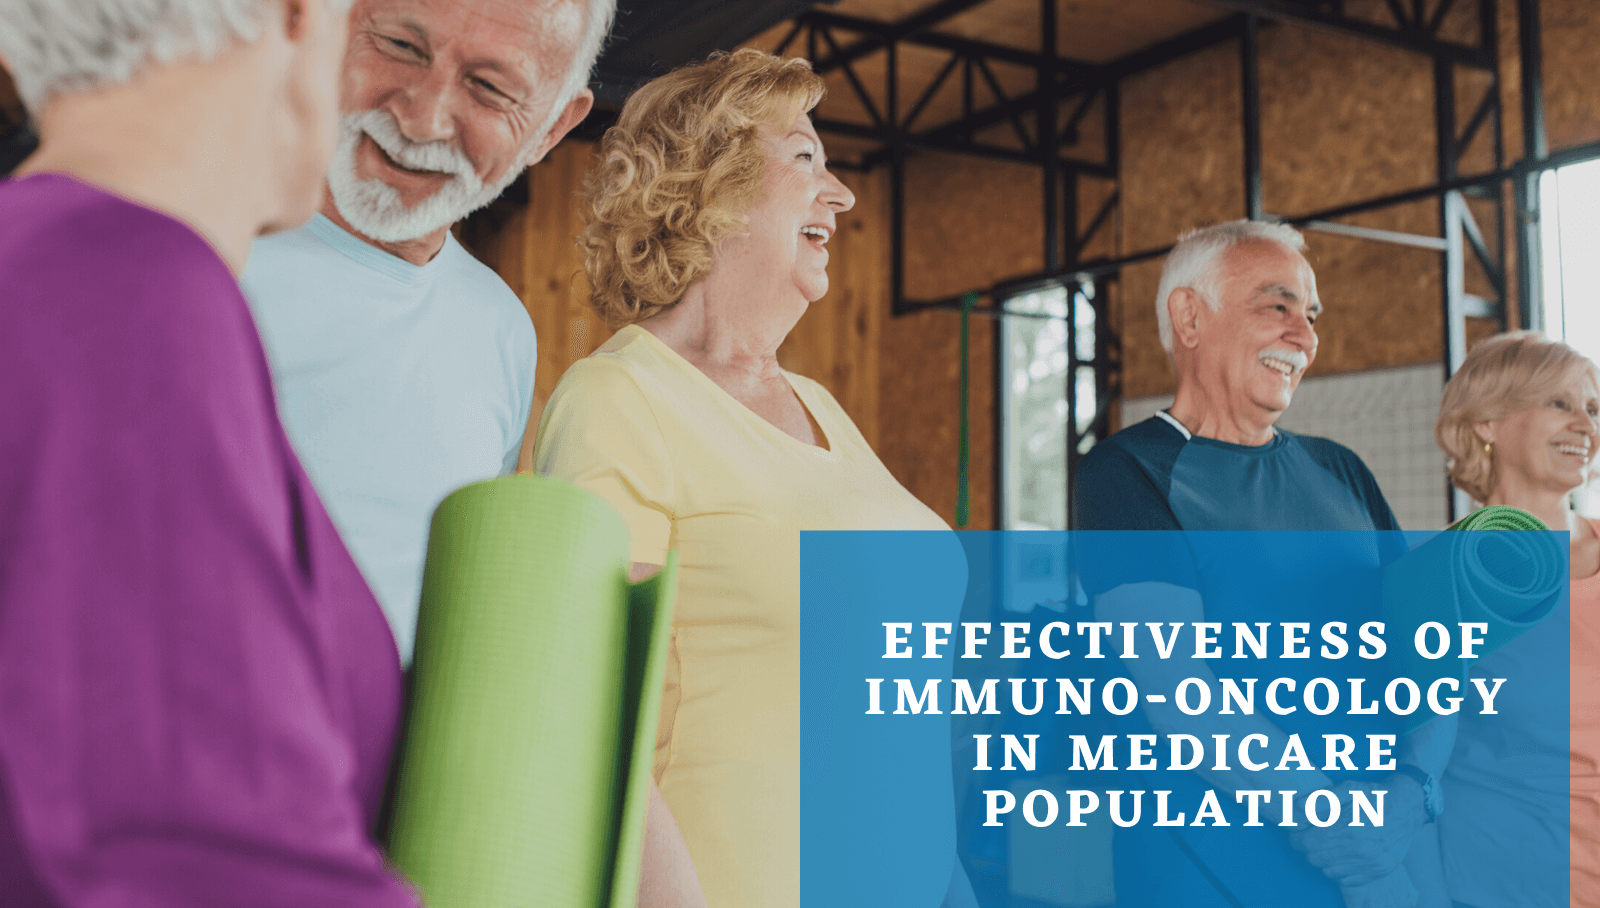 Effectiveness of immuno-oncology in Medicare population.